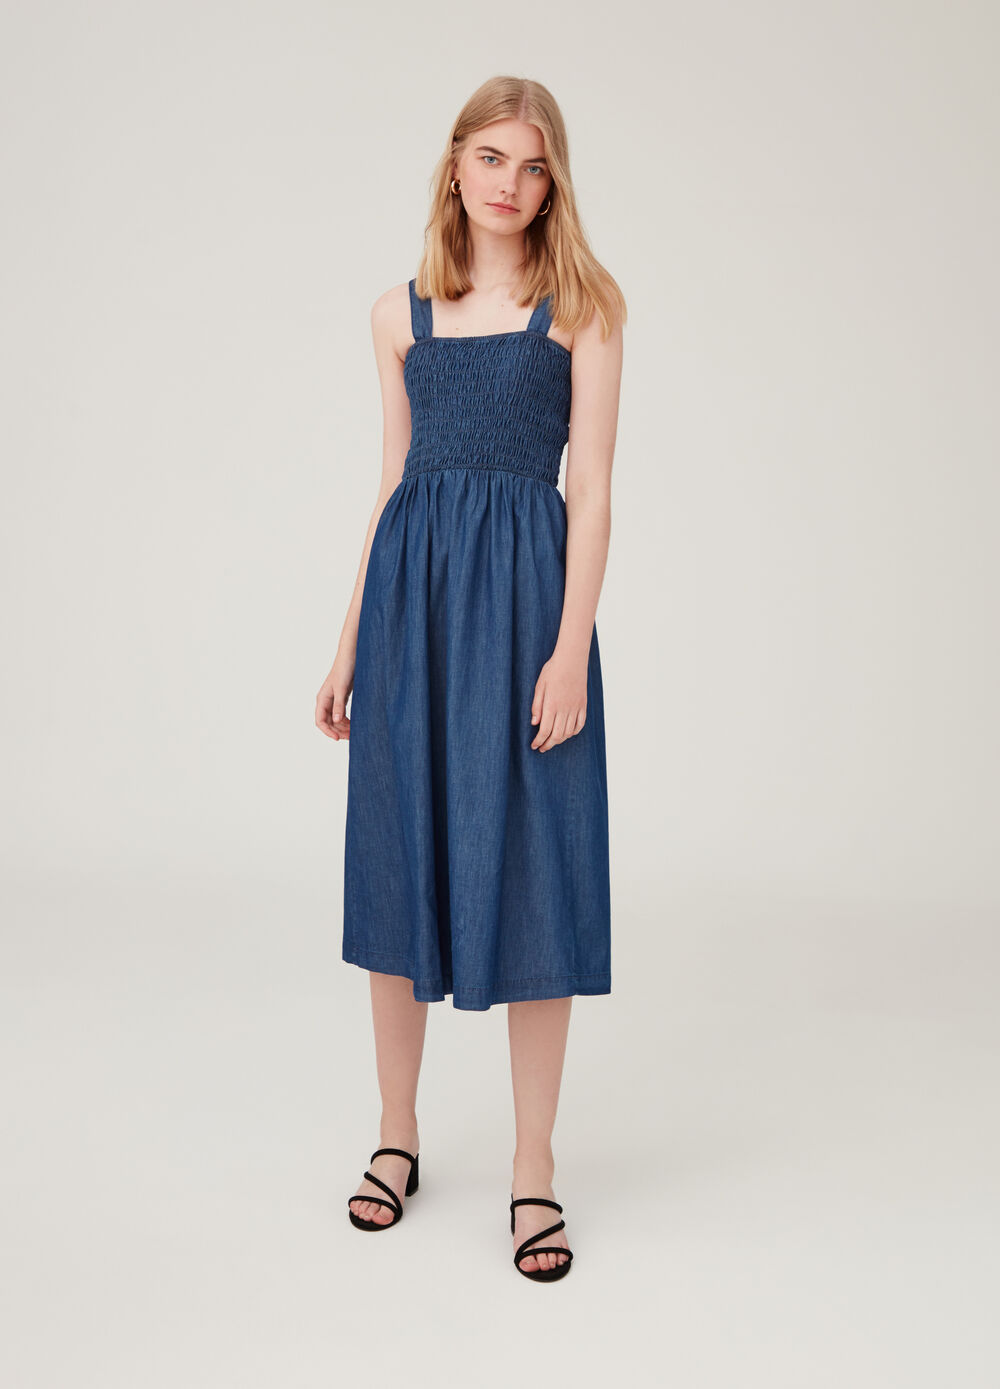 Solid colour sleeveless denim dress.